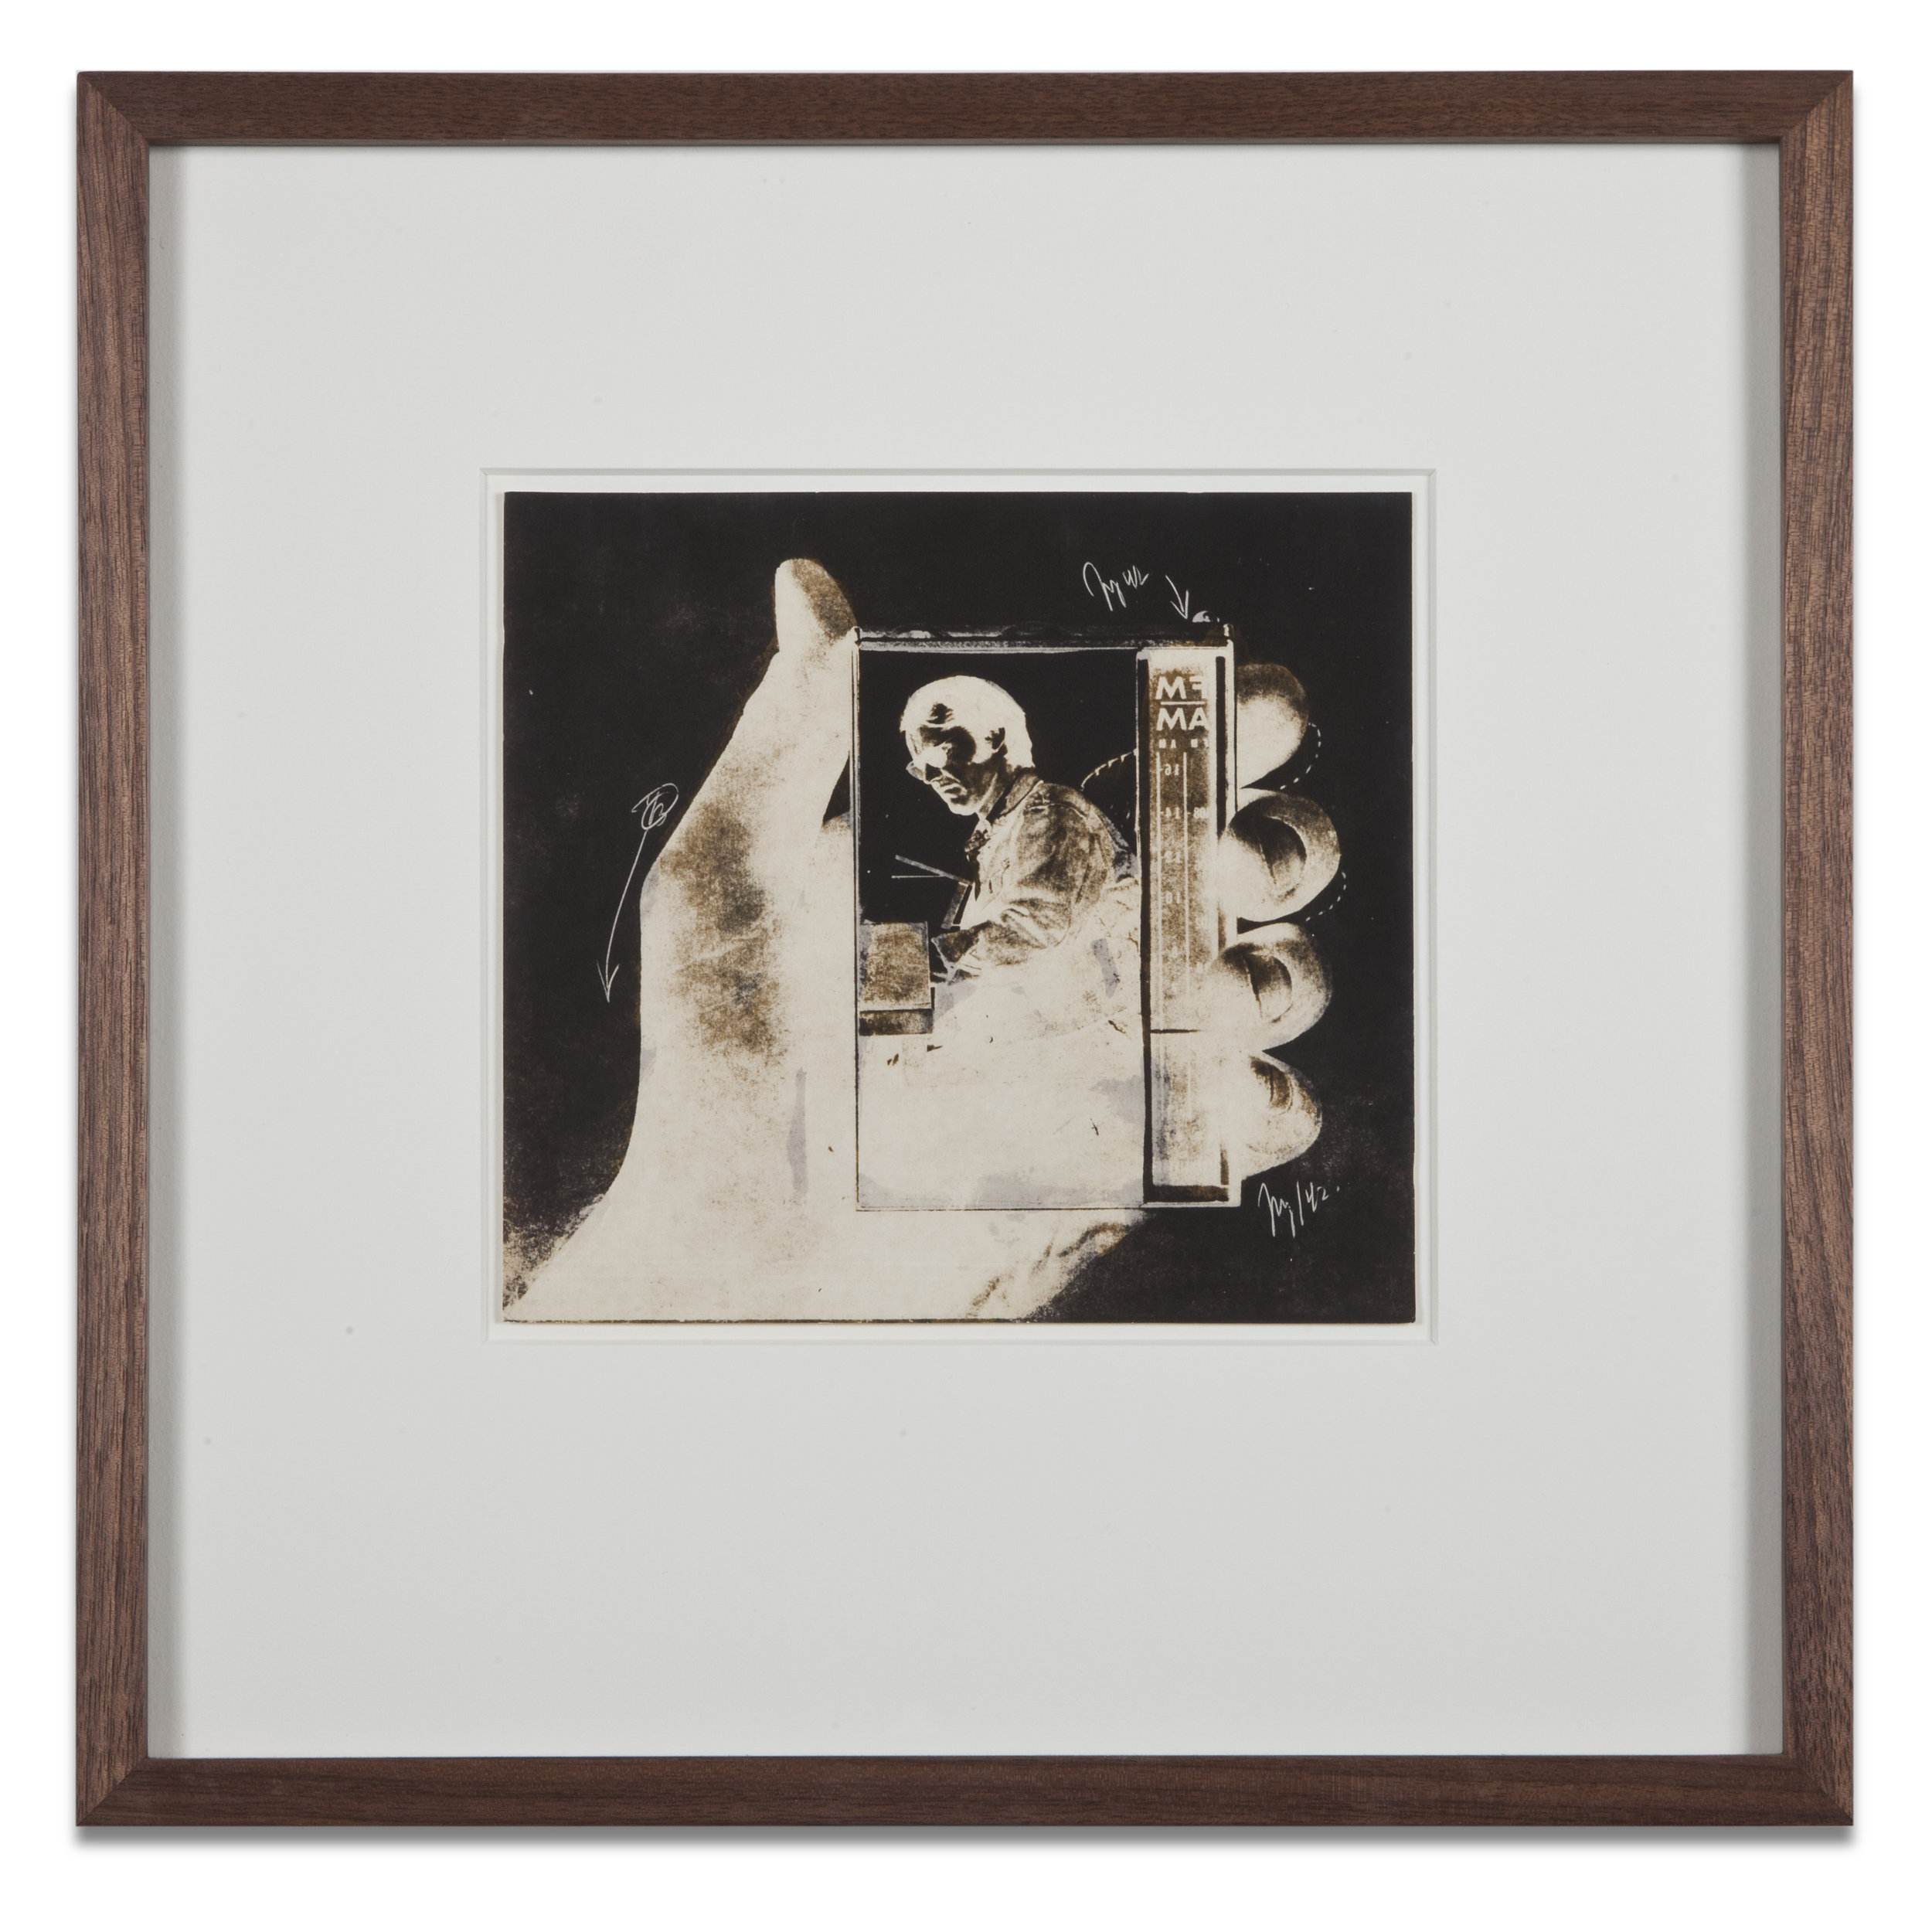 "Copy of ""Untitled #36"" , c. 1964-76, Verifax collage, 6 x 6 1/2 inches, framed 12 x 12 1/2 inches"